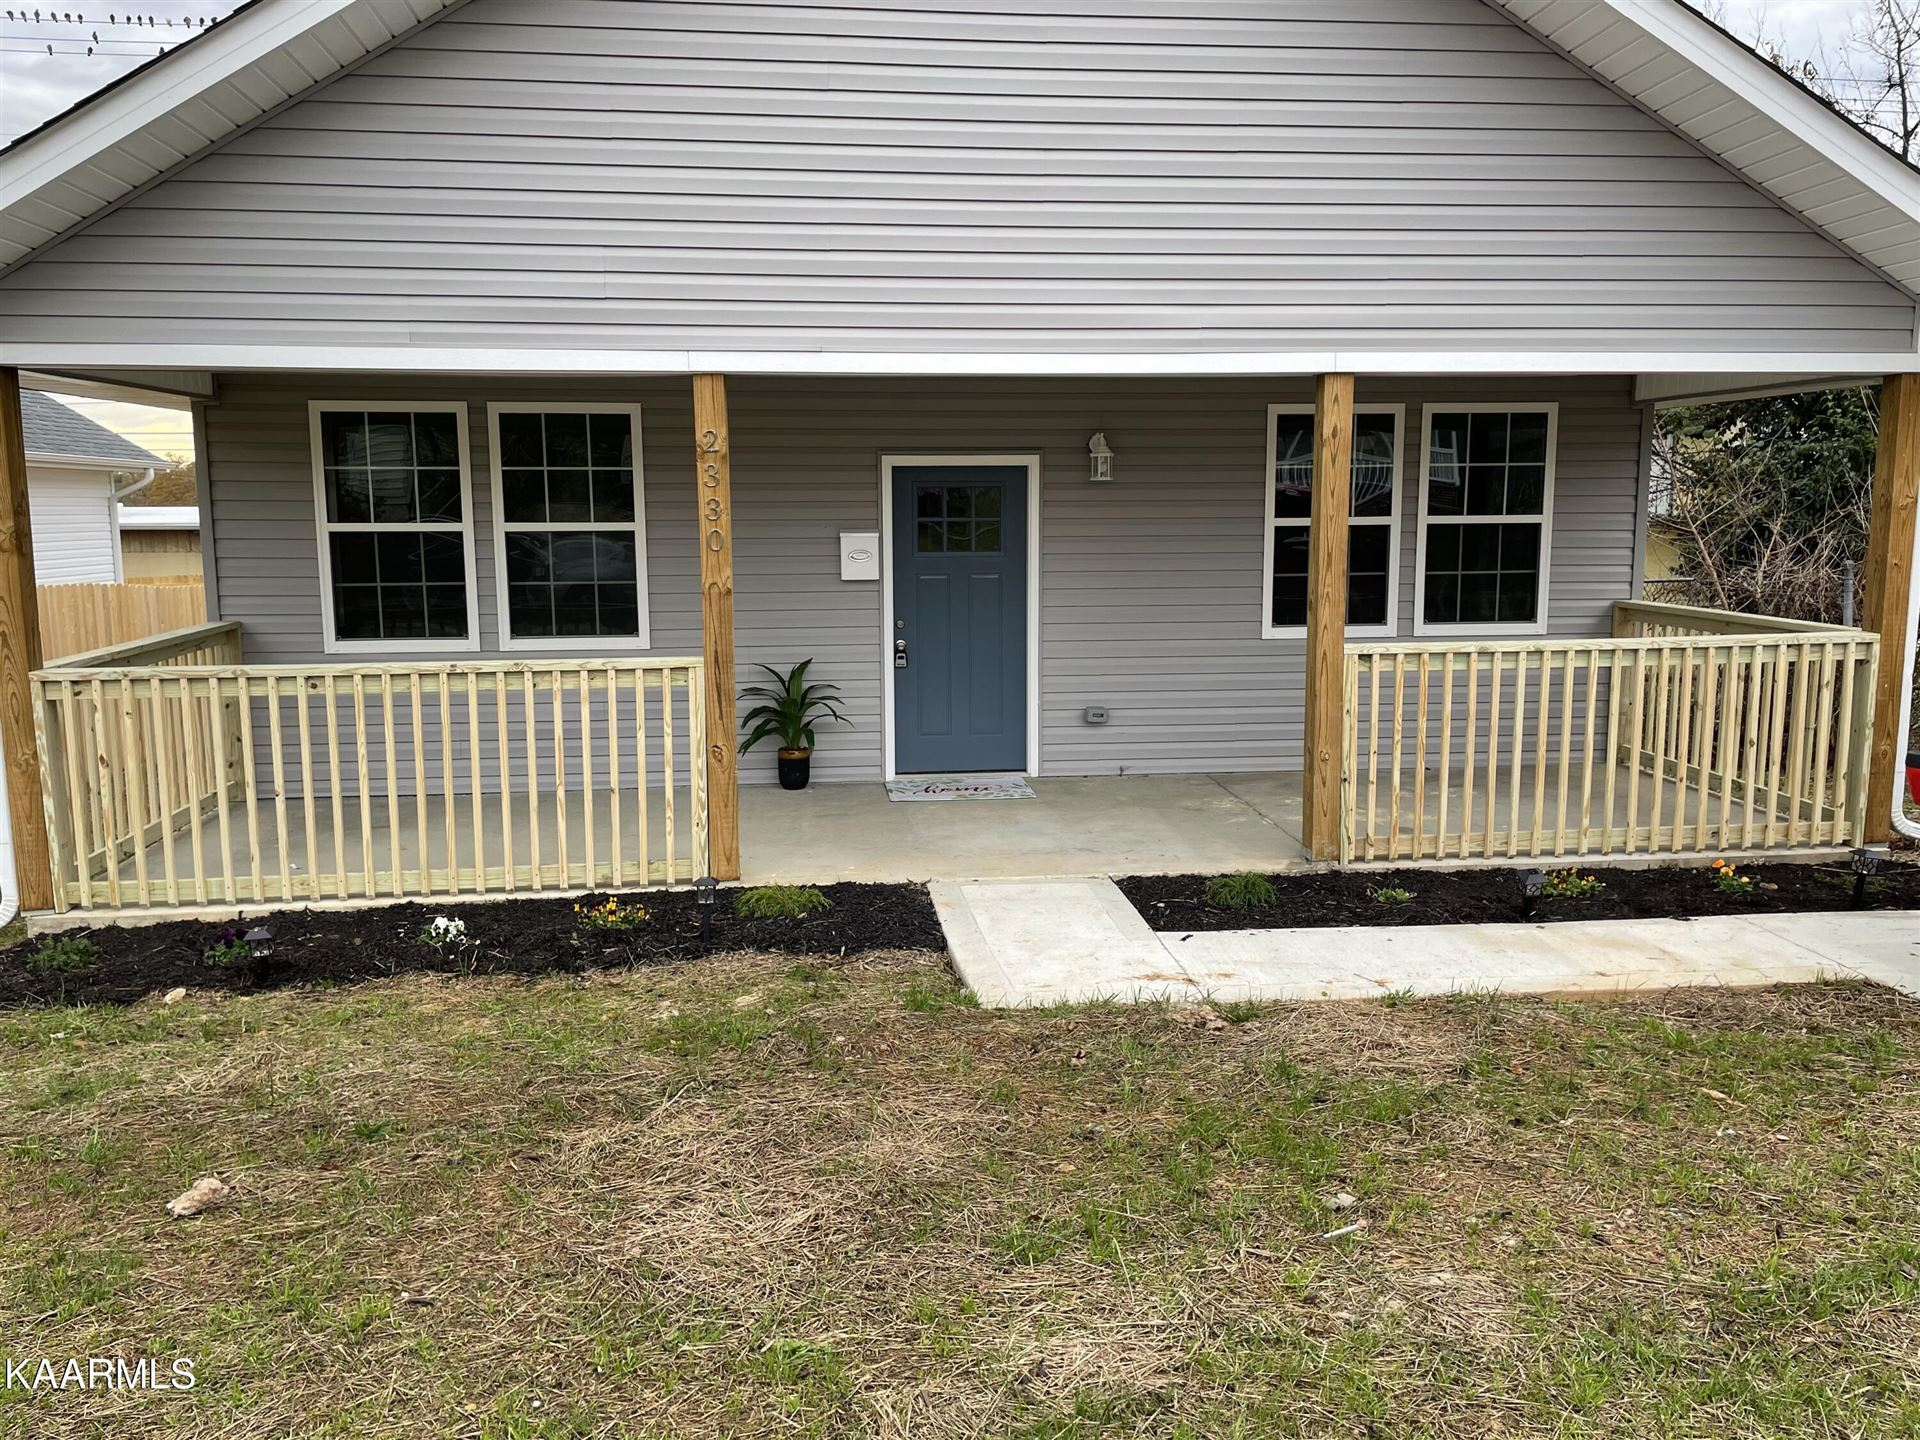 Photo of 2330 Parkview Ave, Knoxville, TN 37917 (MLS # 1165126)